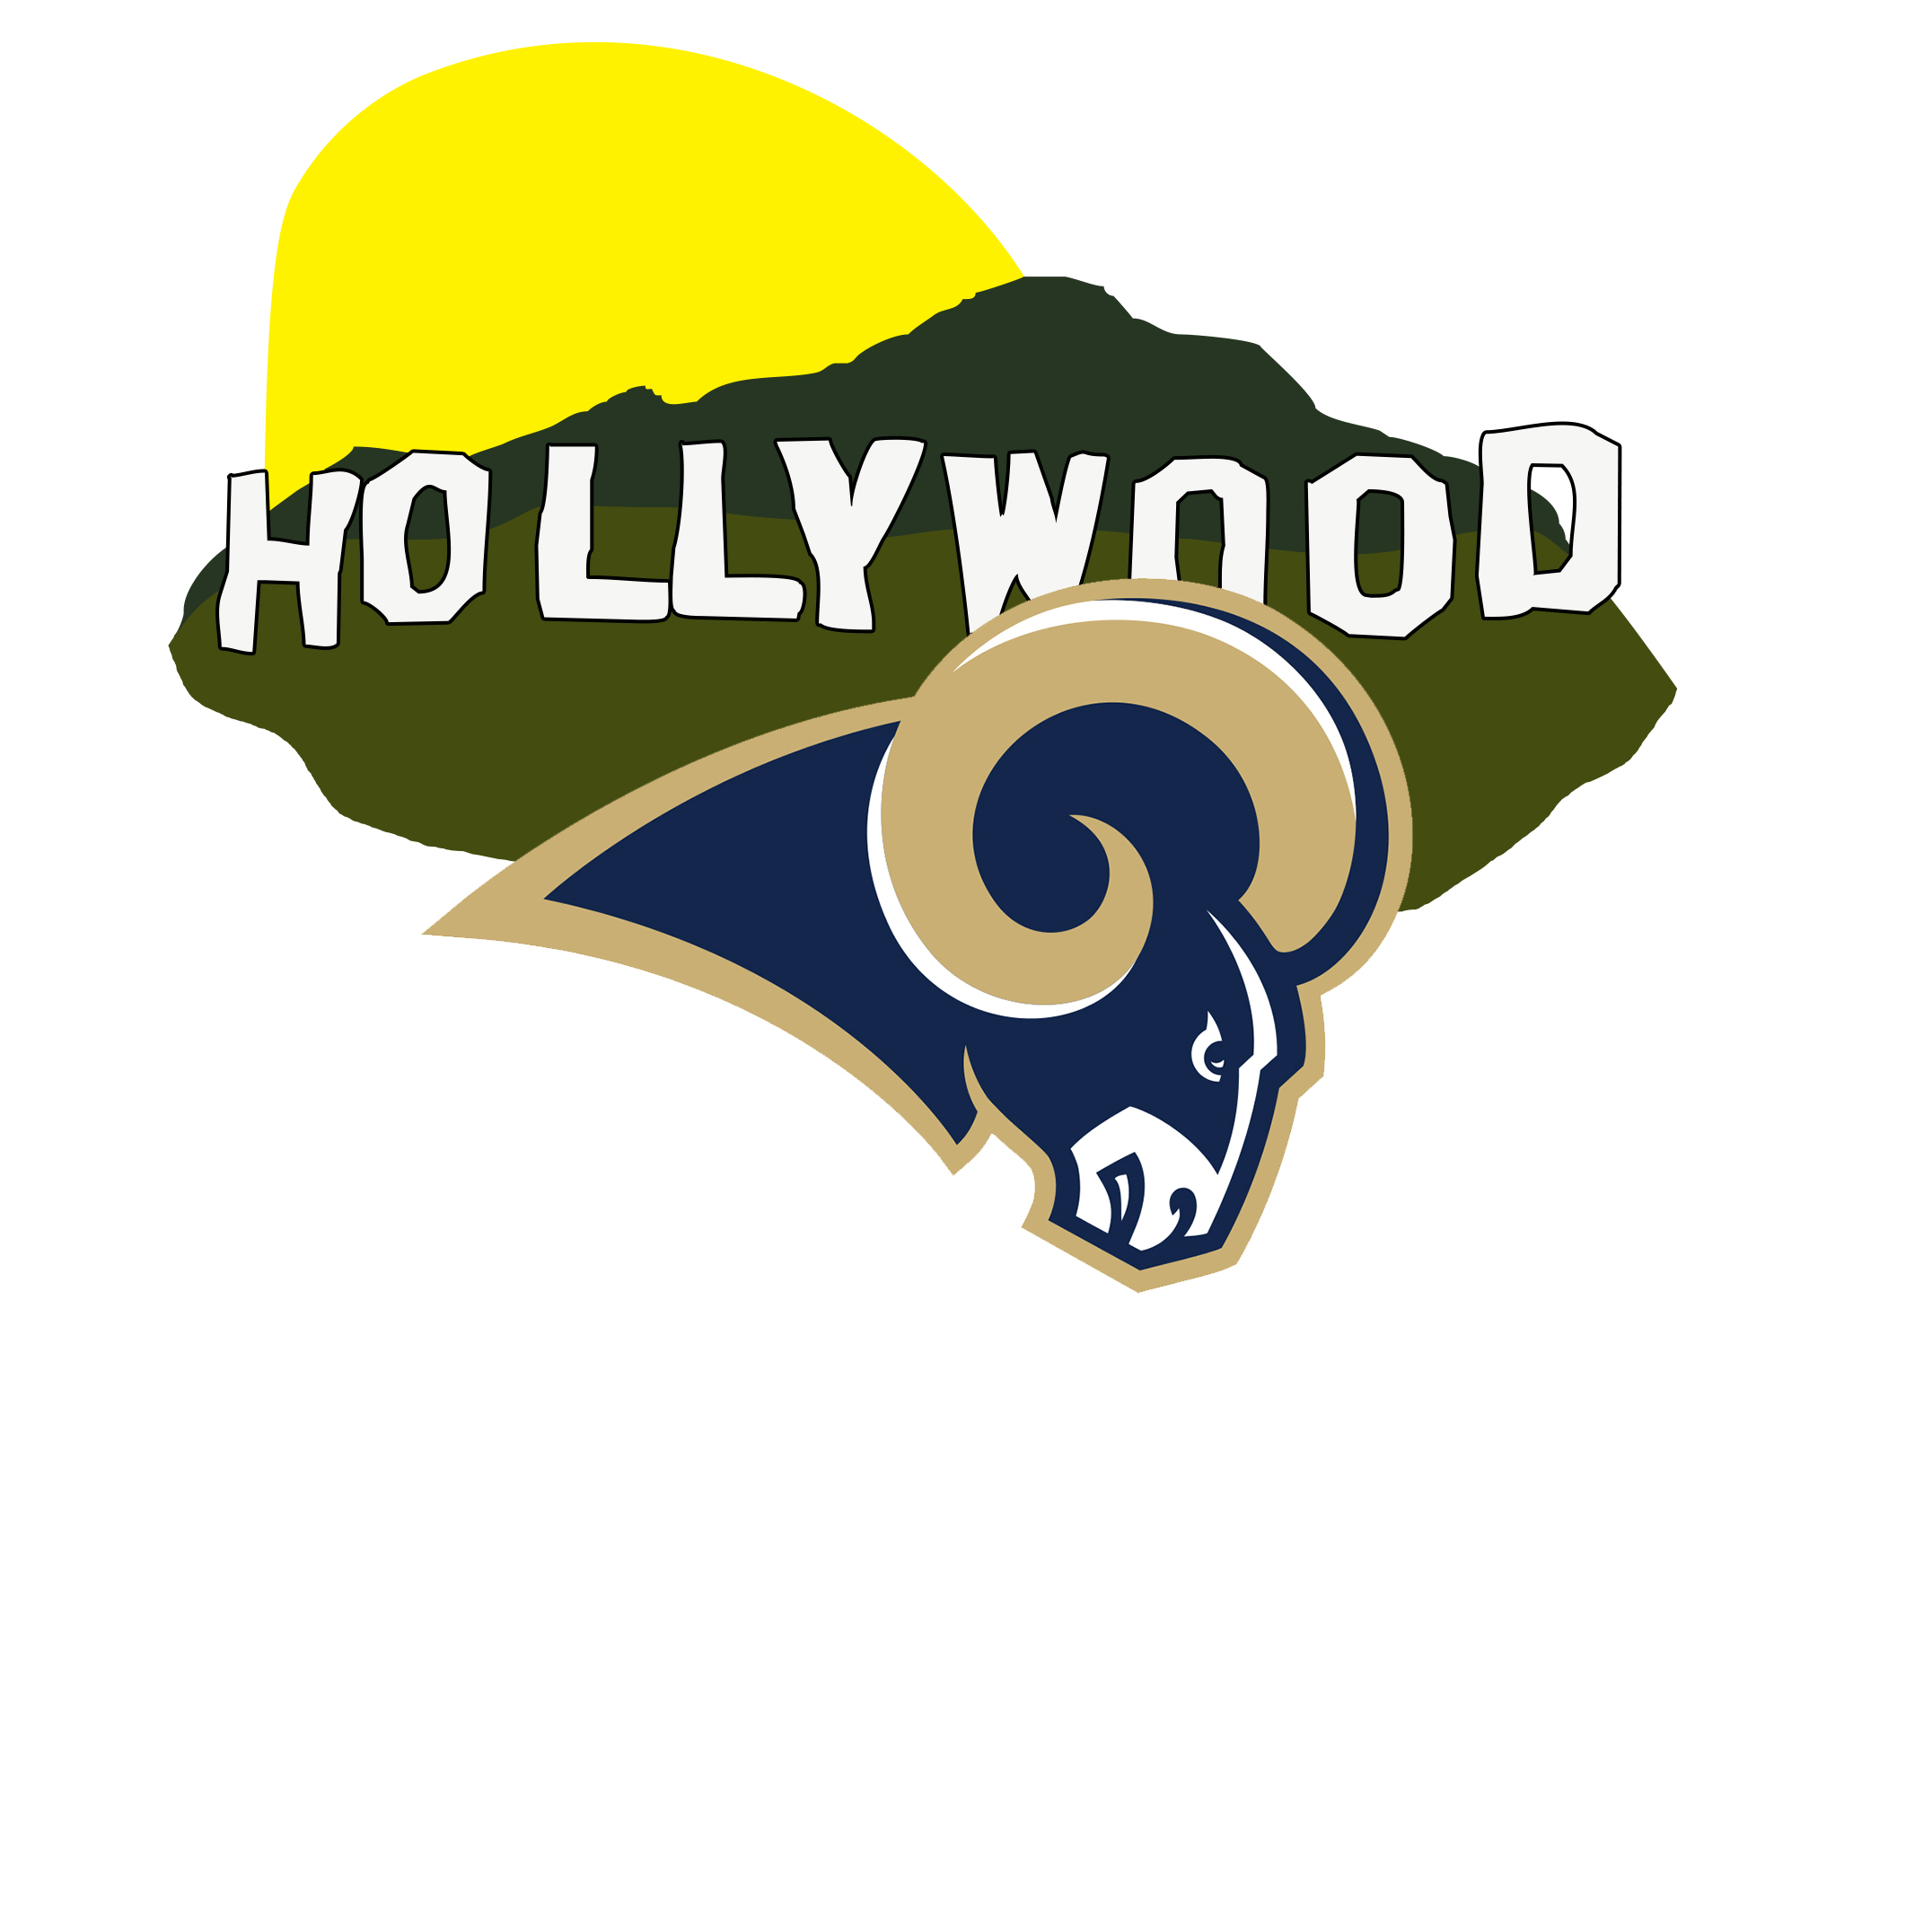 The SiriusXM Sports guide to a new Los Angeles Rams logo.